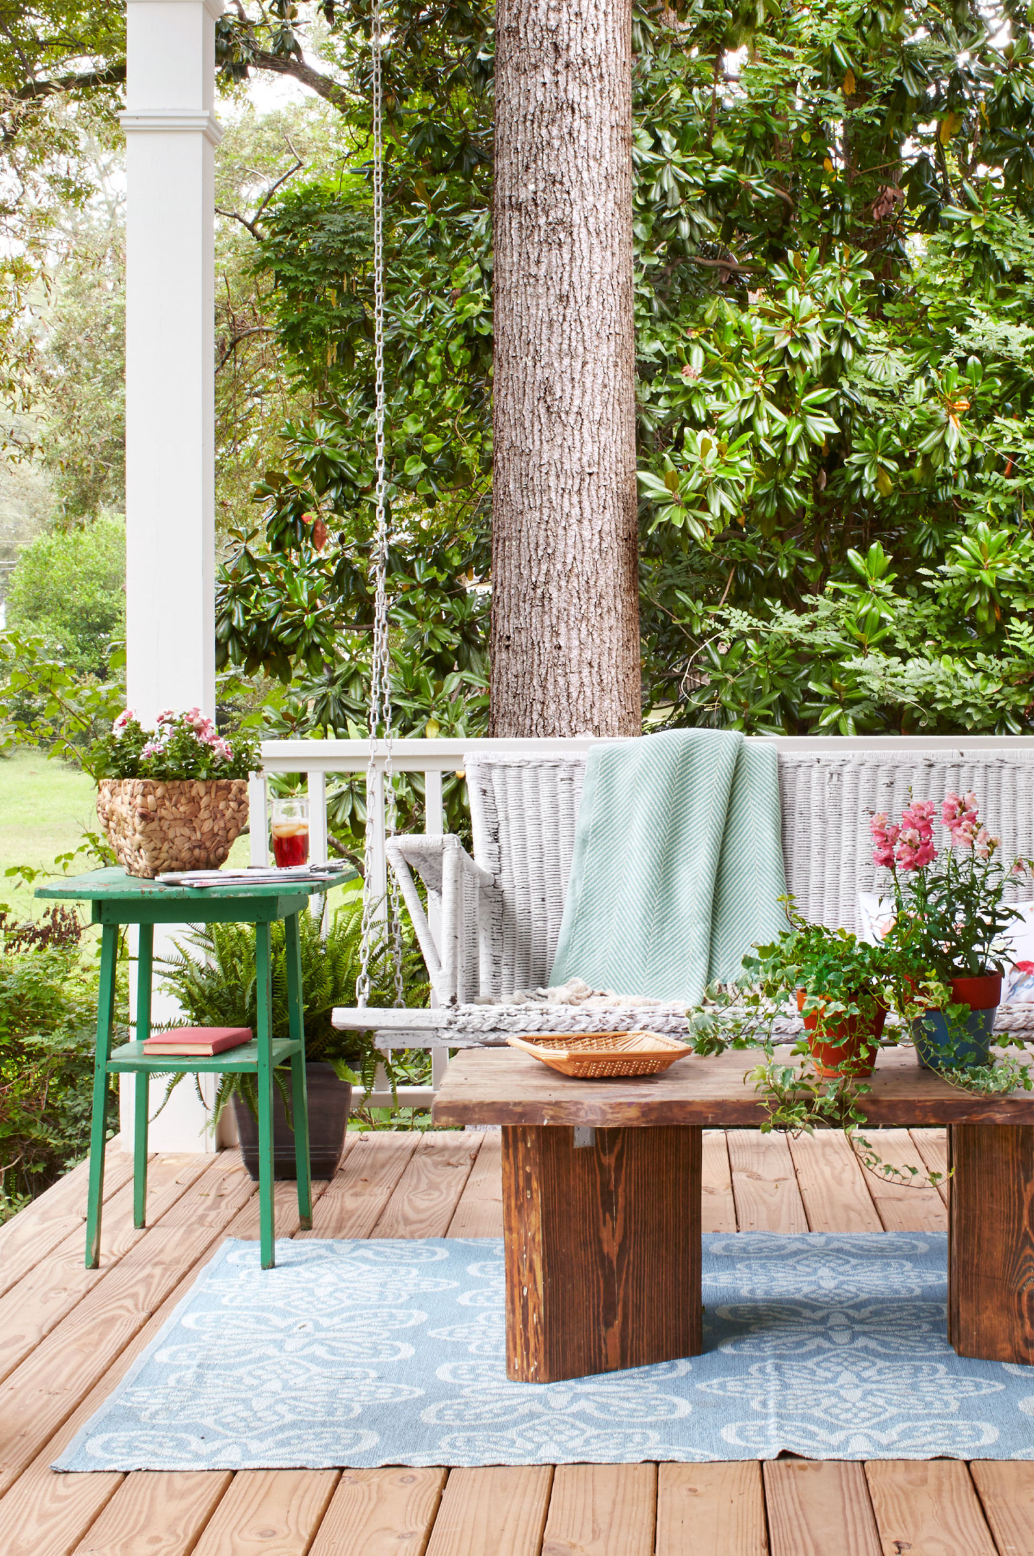 source: http://www.countryliving.com/gardening/garden-ideas/g1336/porch-and-patio-decorating-ideas/